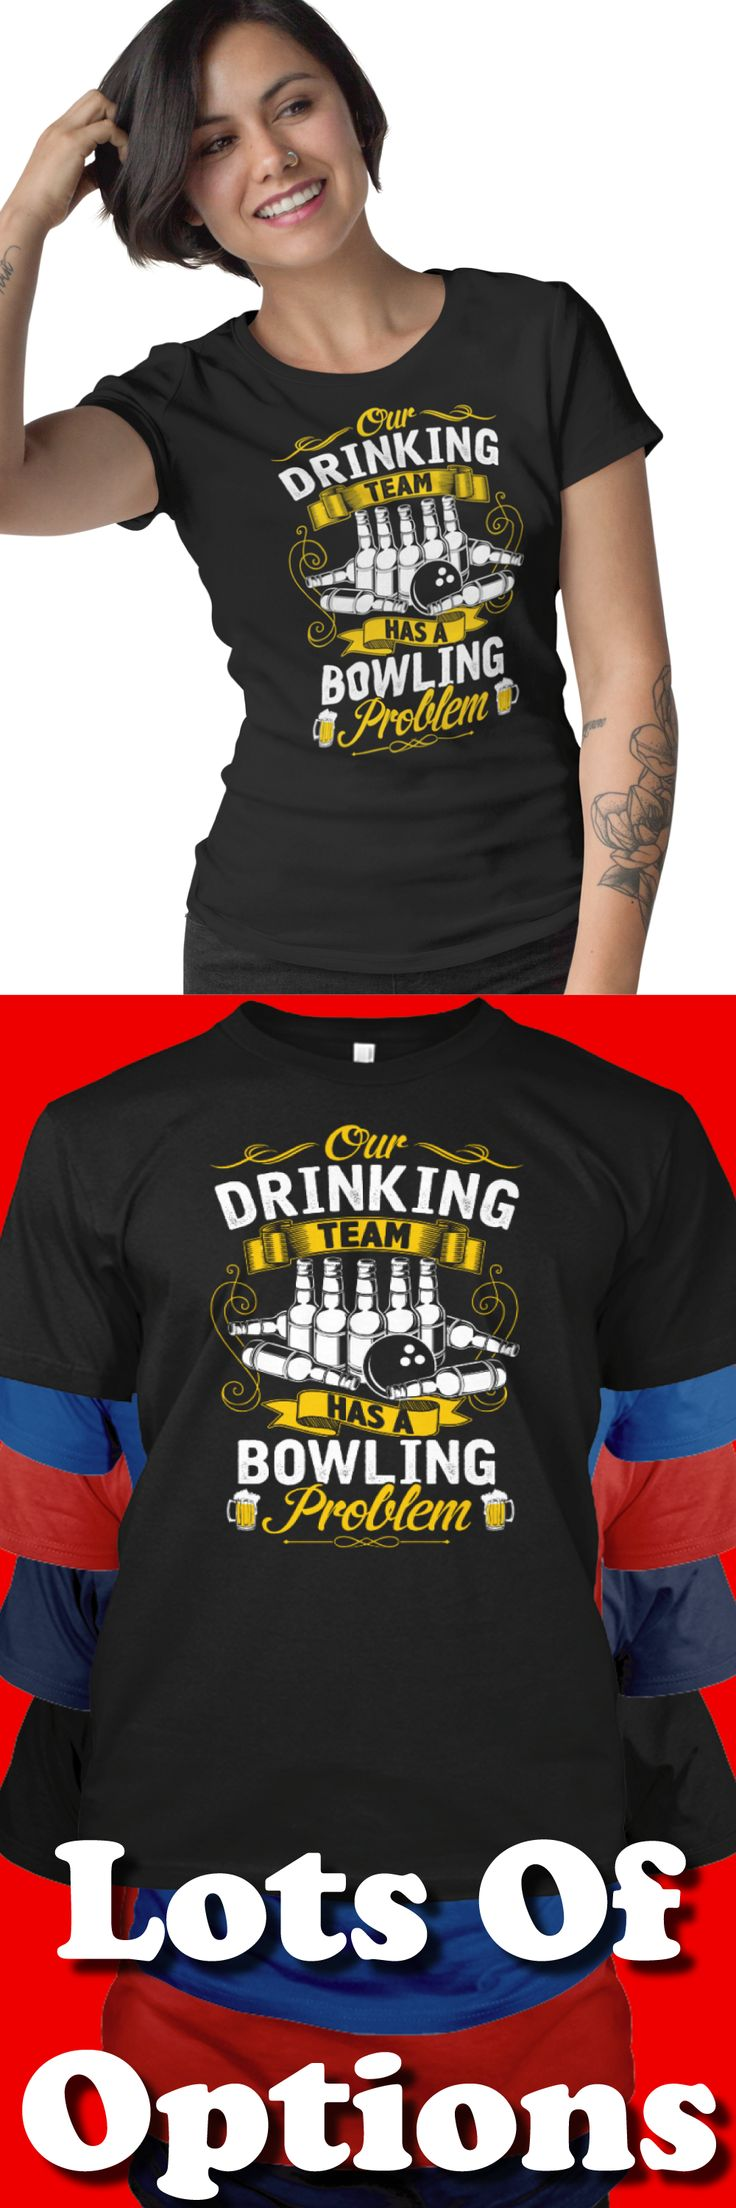 Bowling Shirts: Do You Love Bowling? Great Bowling Gift! Lots Of Sizes & Colors. Love Bowling? Love Funny Bowling Shirts? Wear Bowling Shirts? Strict Limit Of 5 Shirts! Treat Yourself & Click Now! https://teespring.com/GT46-959